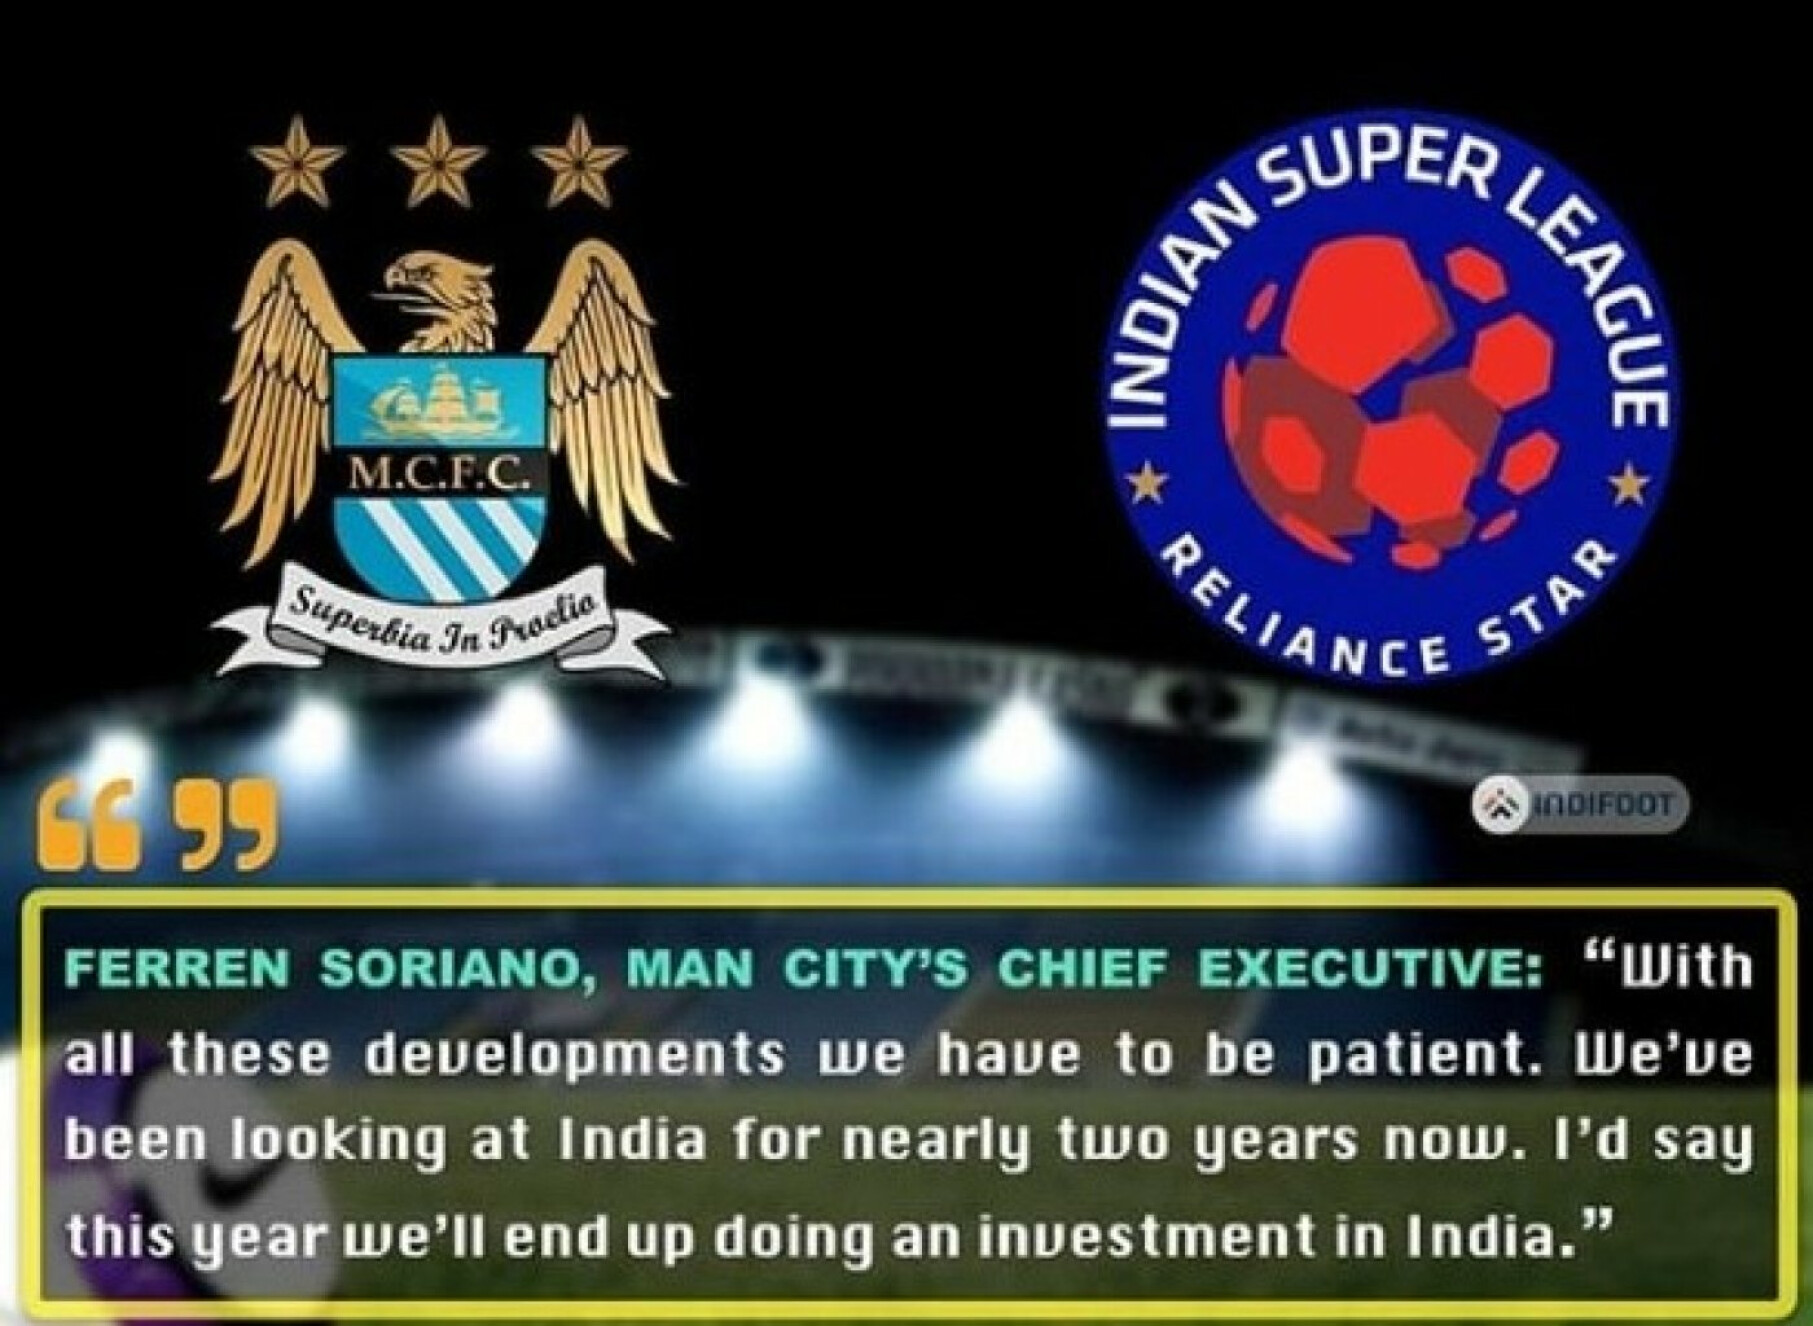 Manchester City set to buy an Indian Super League club this year.